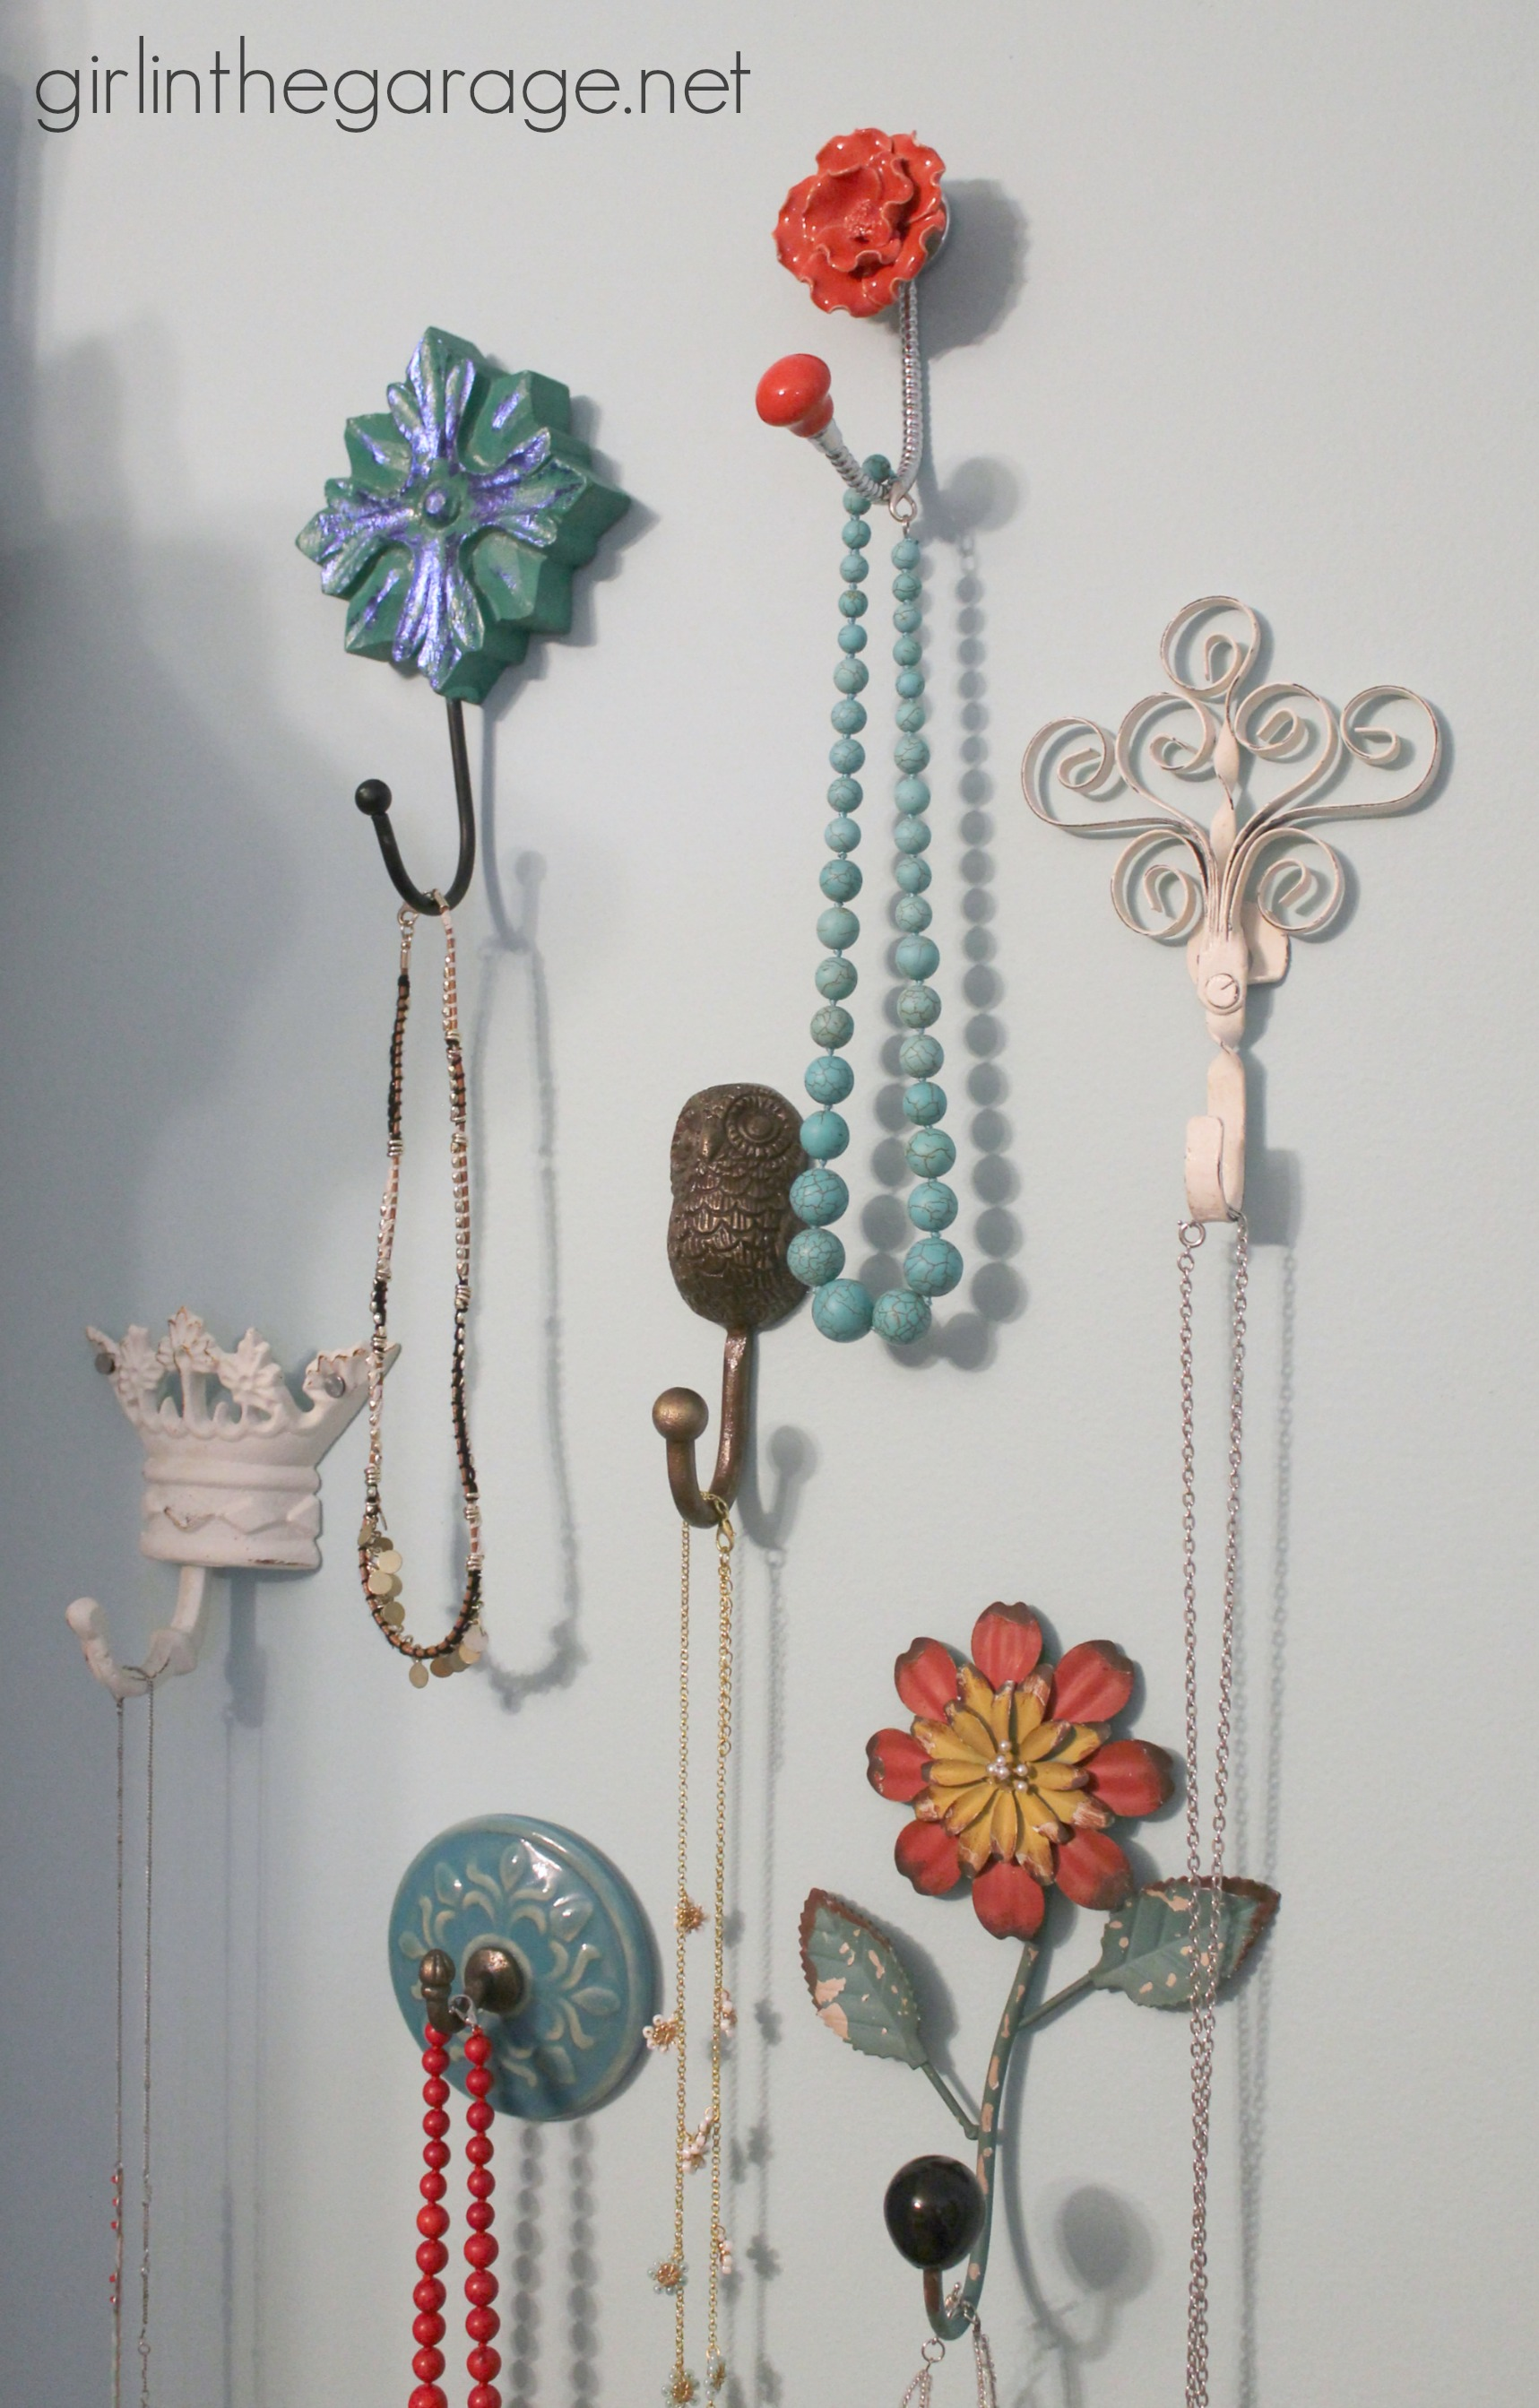 Decorative wall hooks as jewelry storage girl in the garage Hooks for the wall